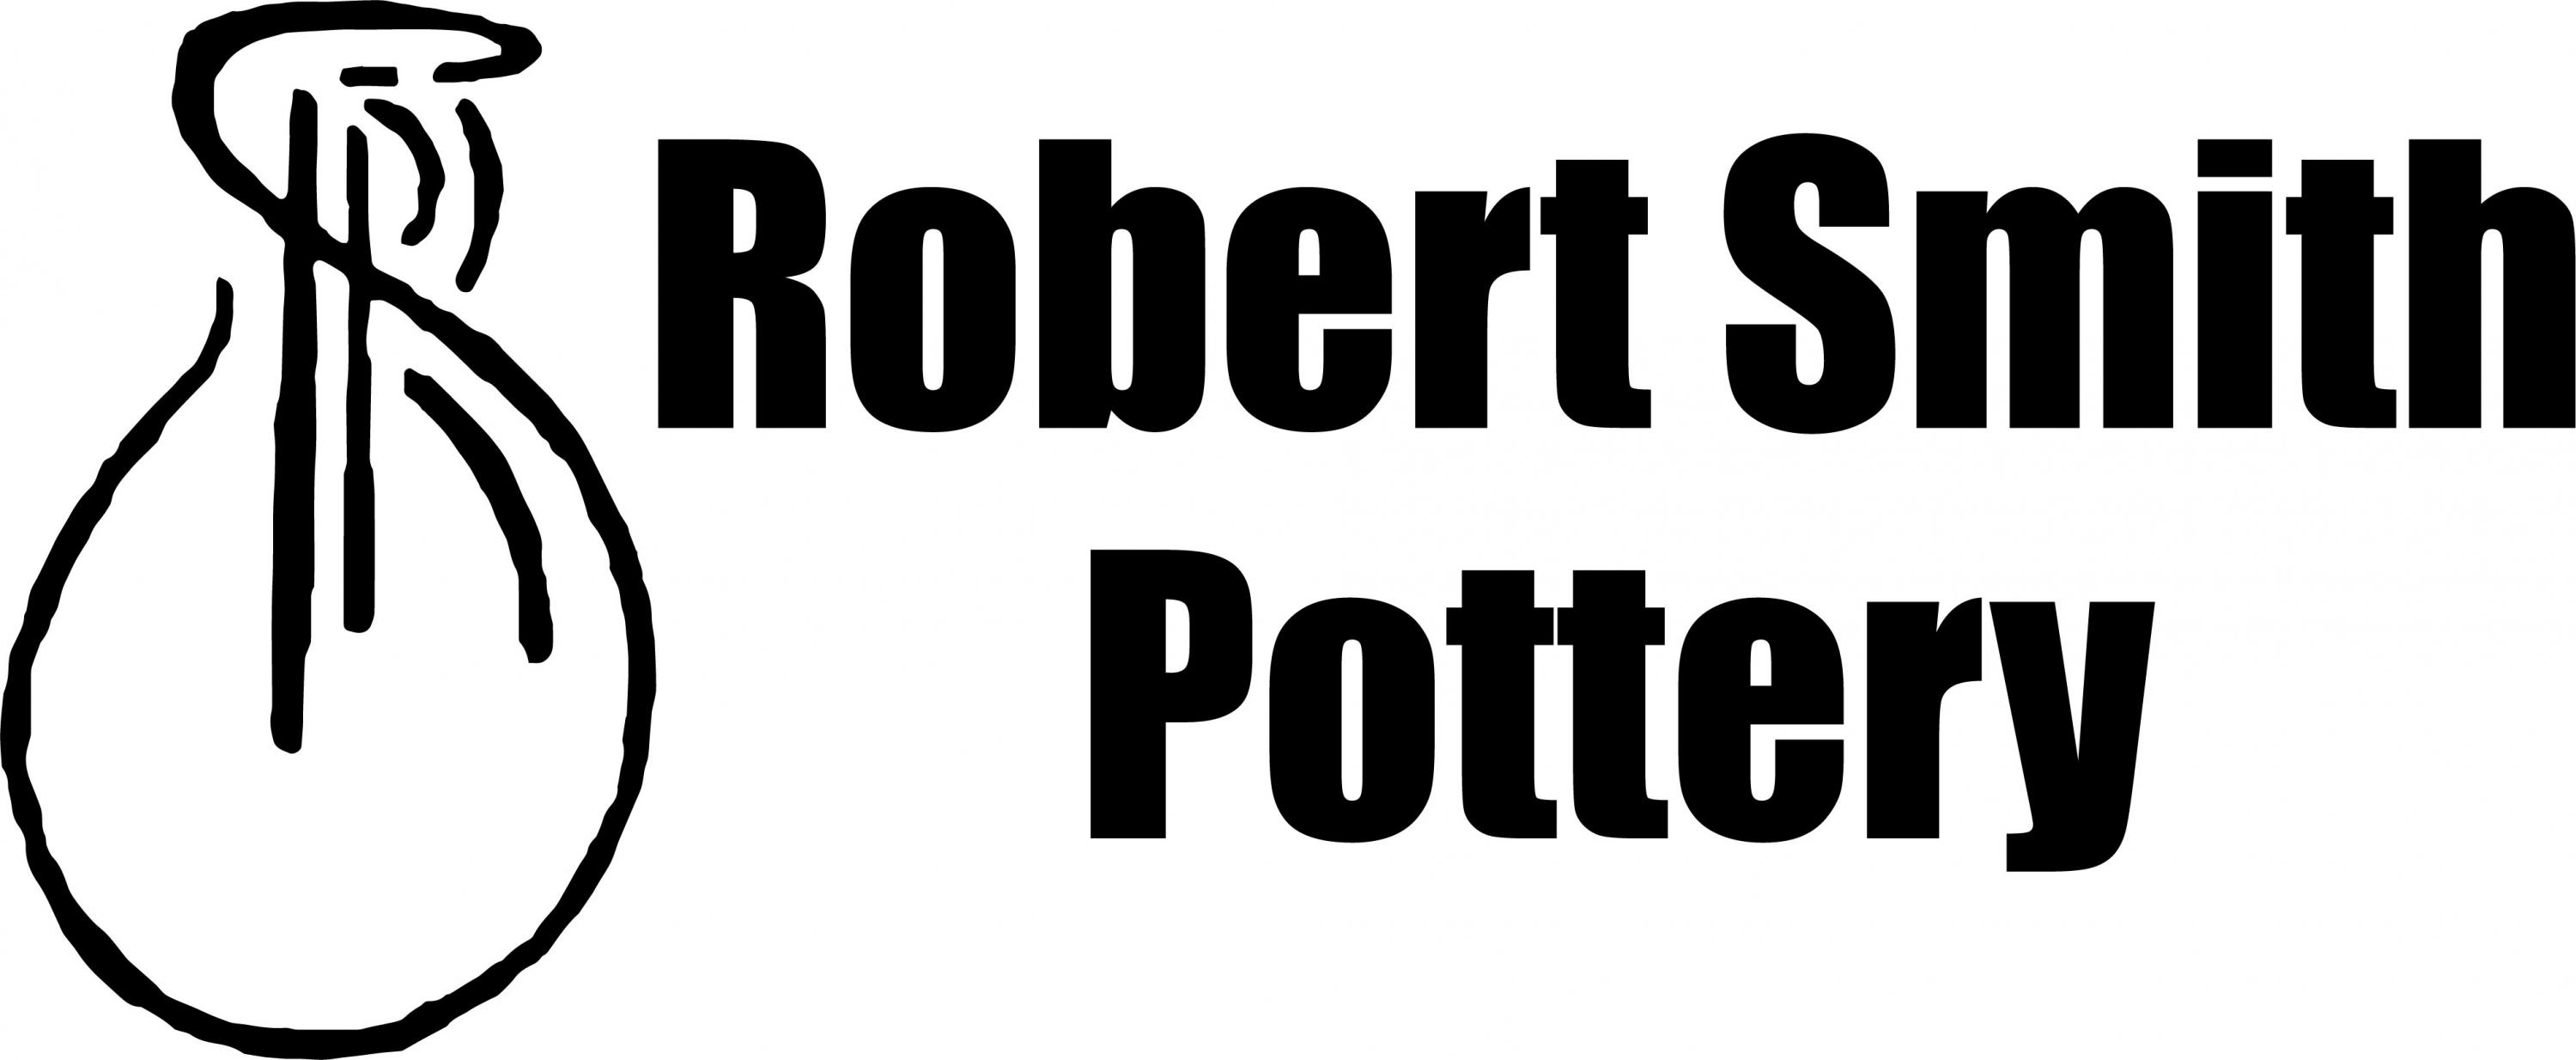 Robert Smith Pottery logo